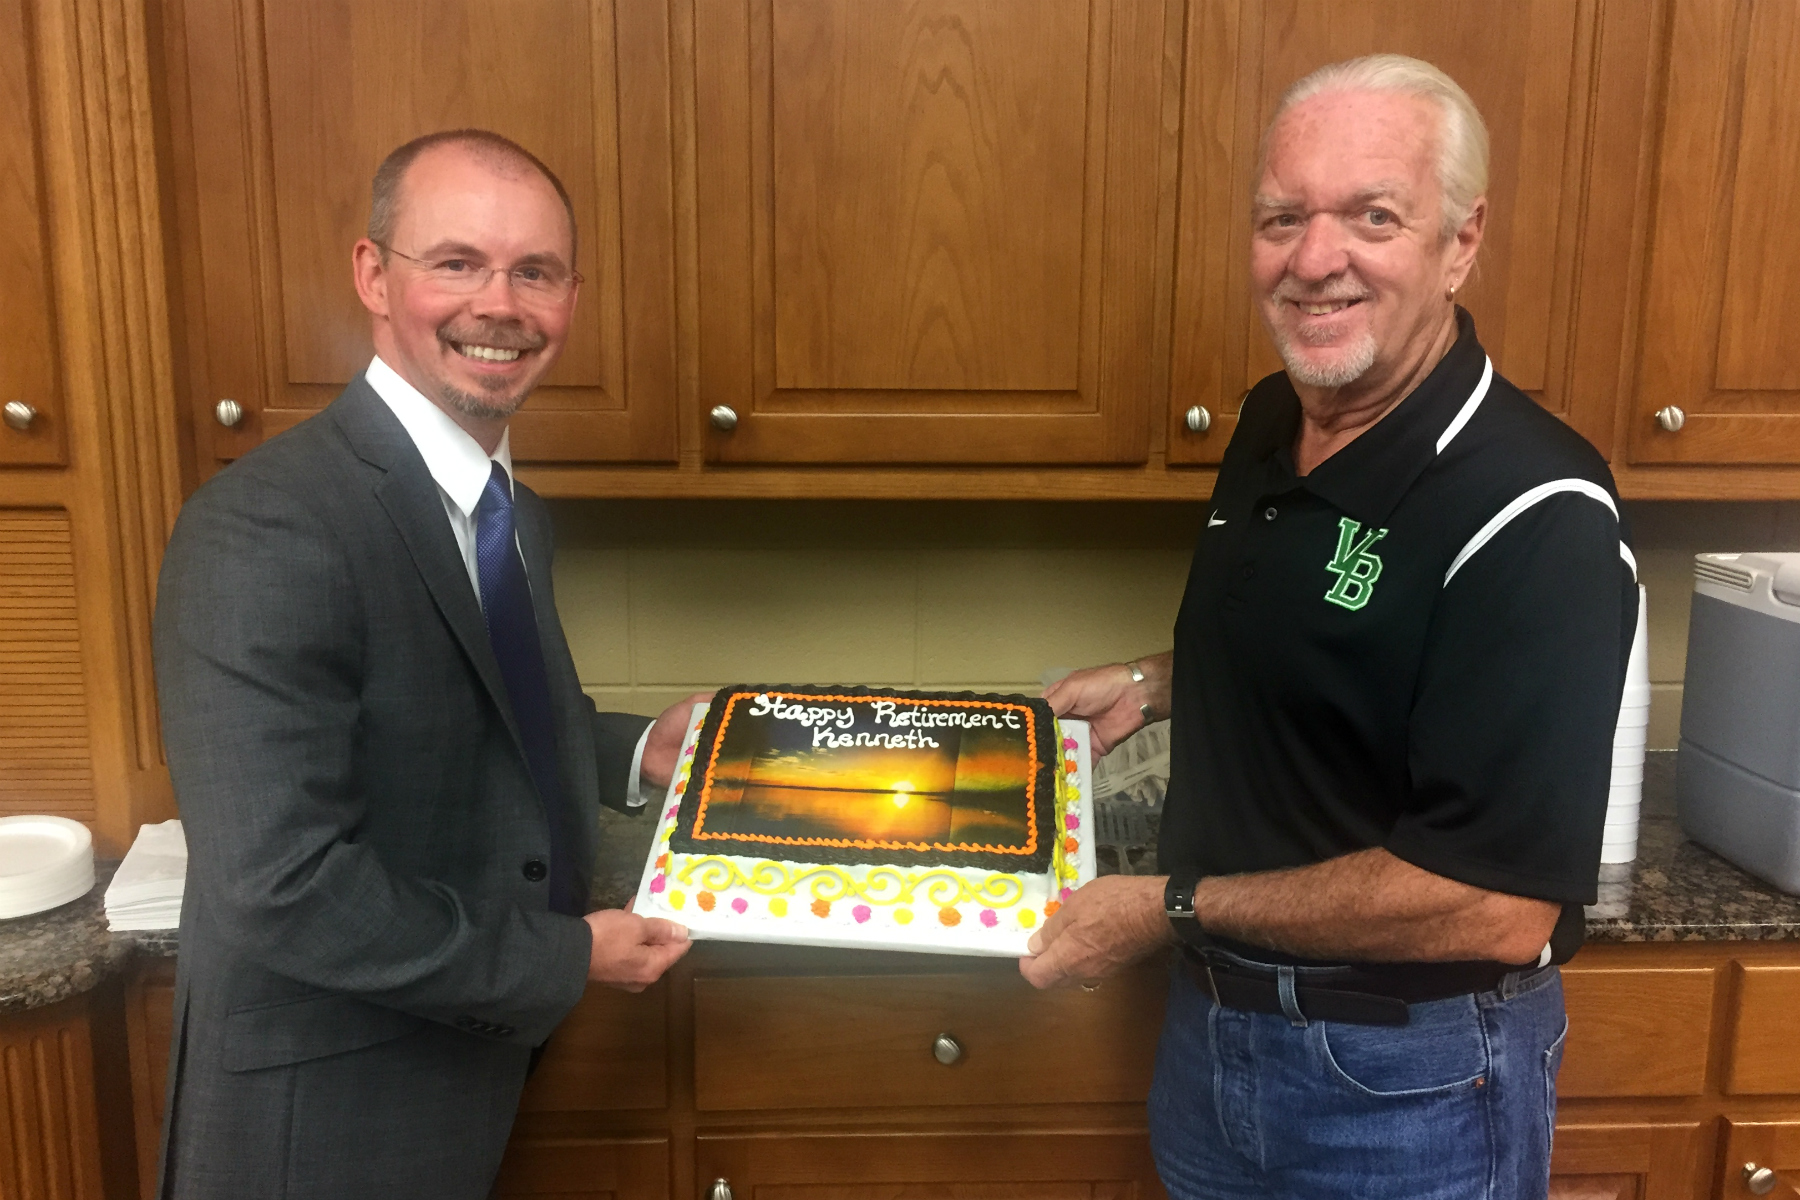 Board of Education honors retiring local editor, Kenneth Fry